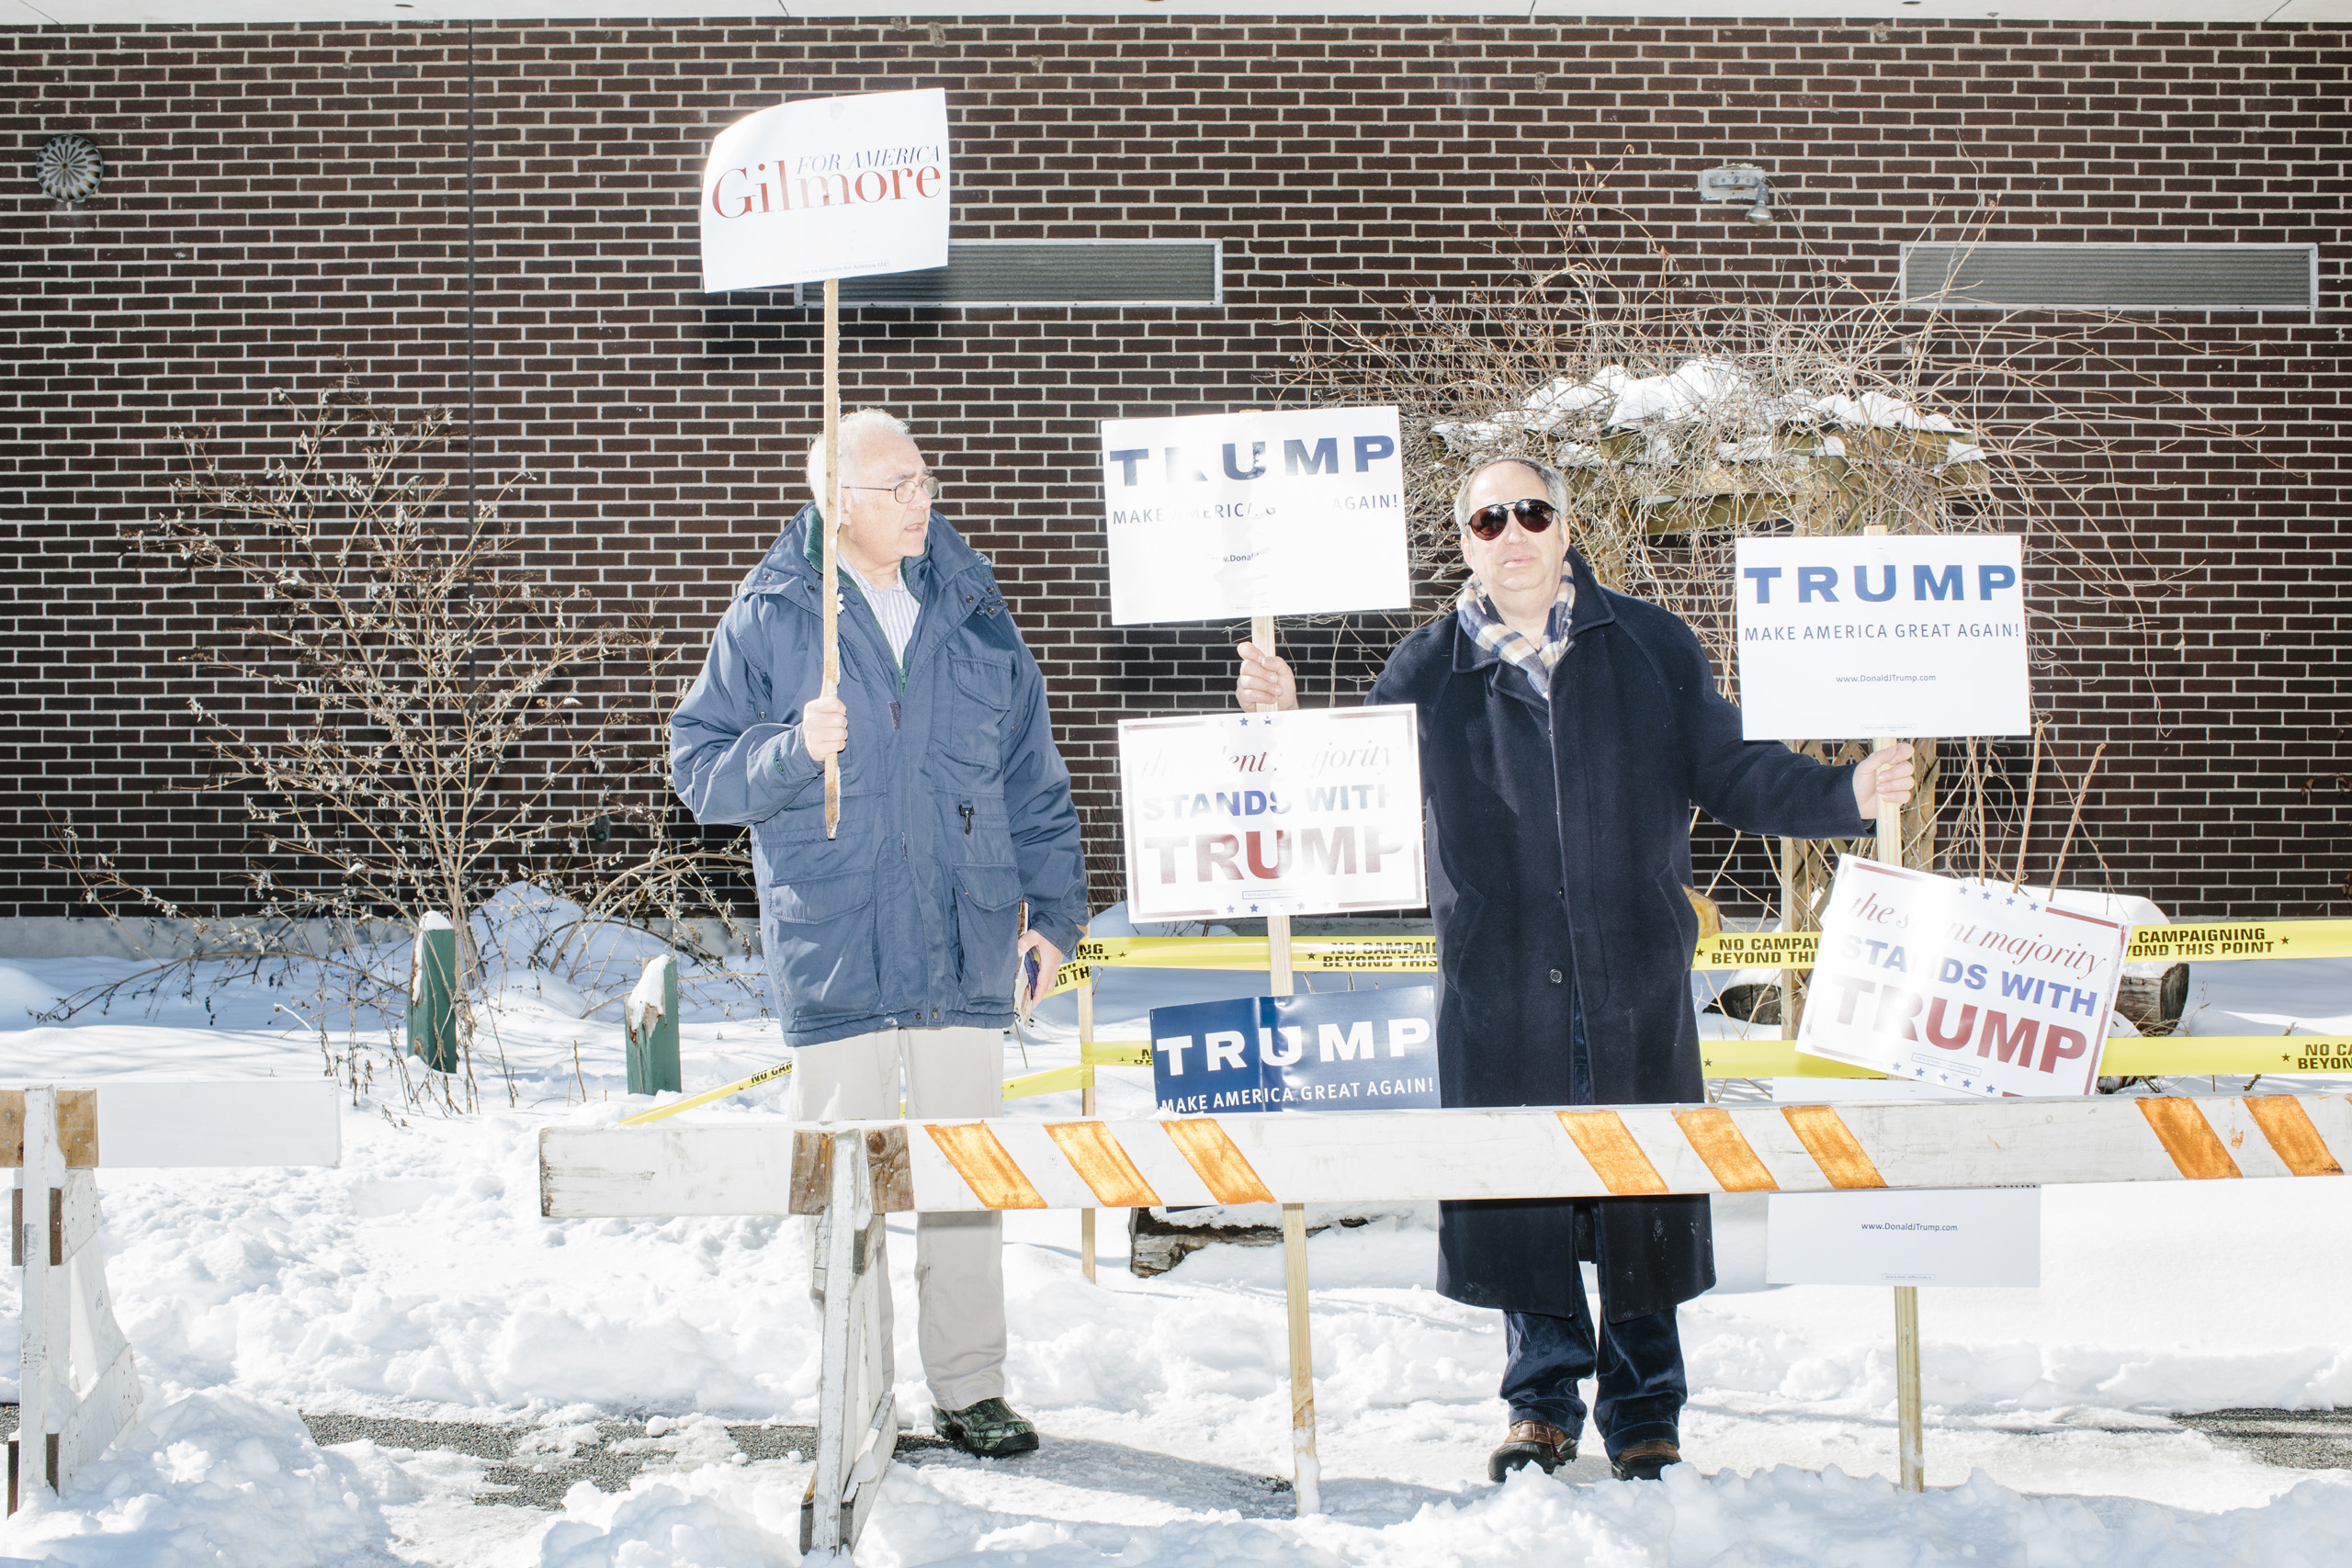 Lloyd Gatling, (left) of Suffolk, Virginia, brother-in-law of former Virginia governor and Republican presidential candidate Jim Gilmore holds campaign signs for the candidate outside the polling location for Manchester Ward 2 at Hillside Middle School in Manchester, New Hampshire, on the day of primary voting, Feb. 9, 2016. Also pictured is Jack Cohen, of Manchester, New Hampshire, a volunteer with the Trump campaign.